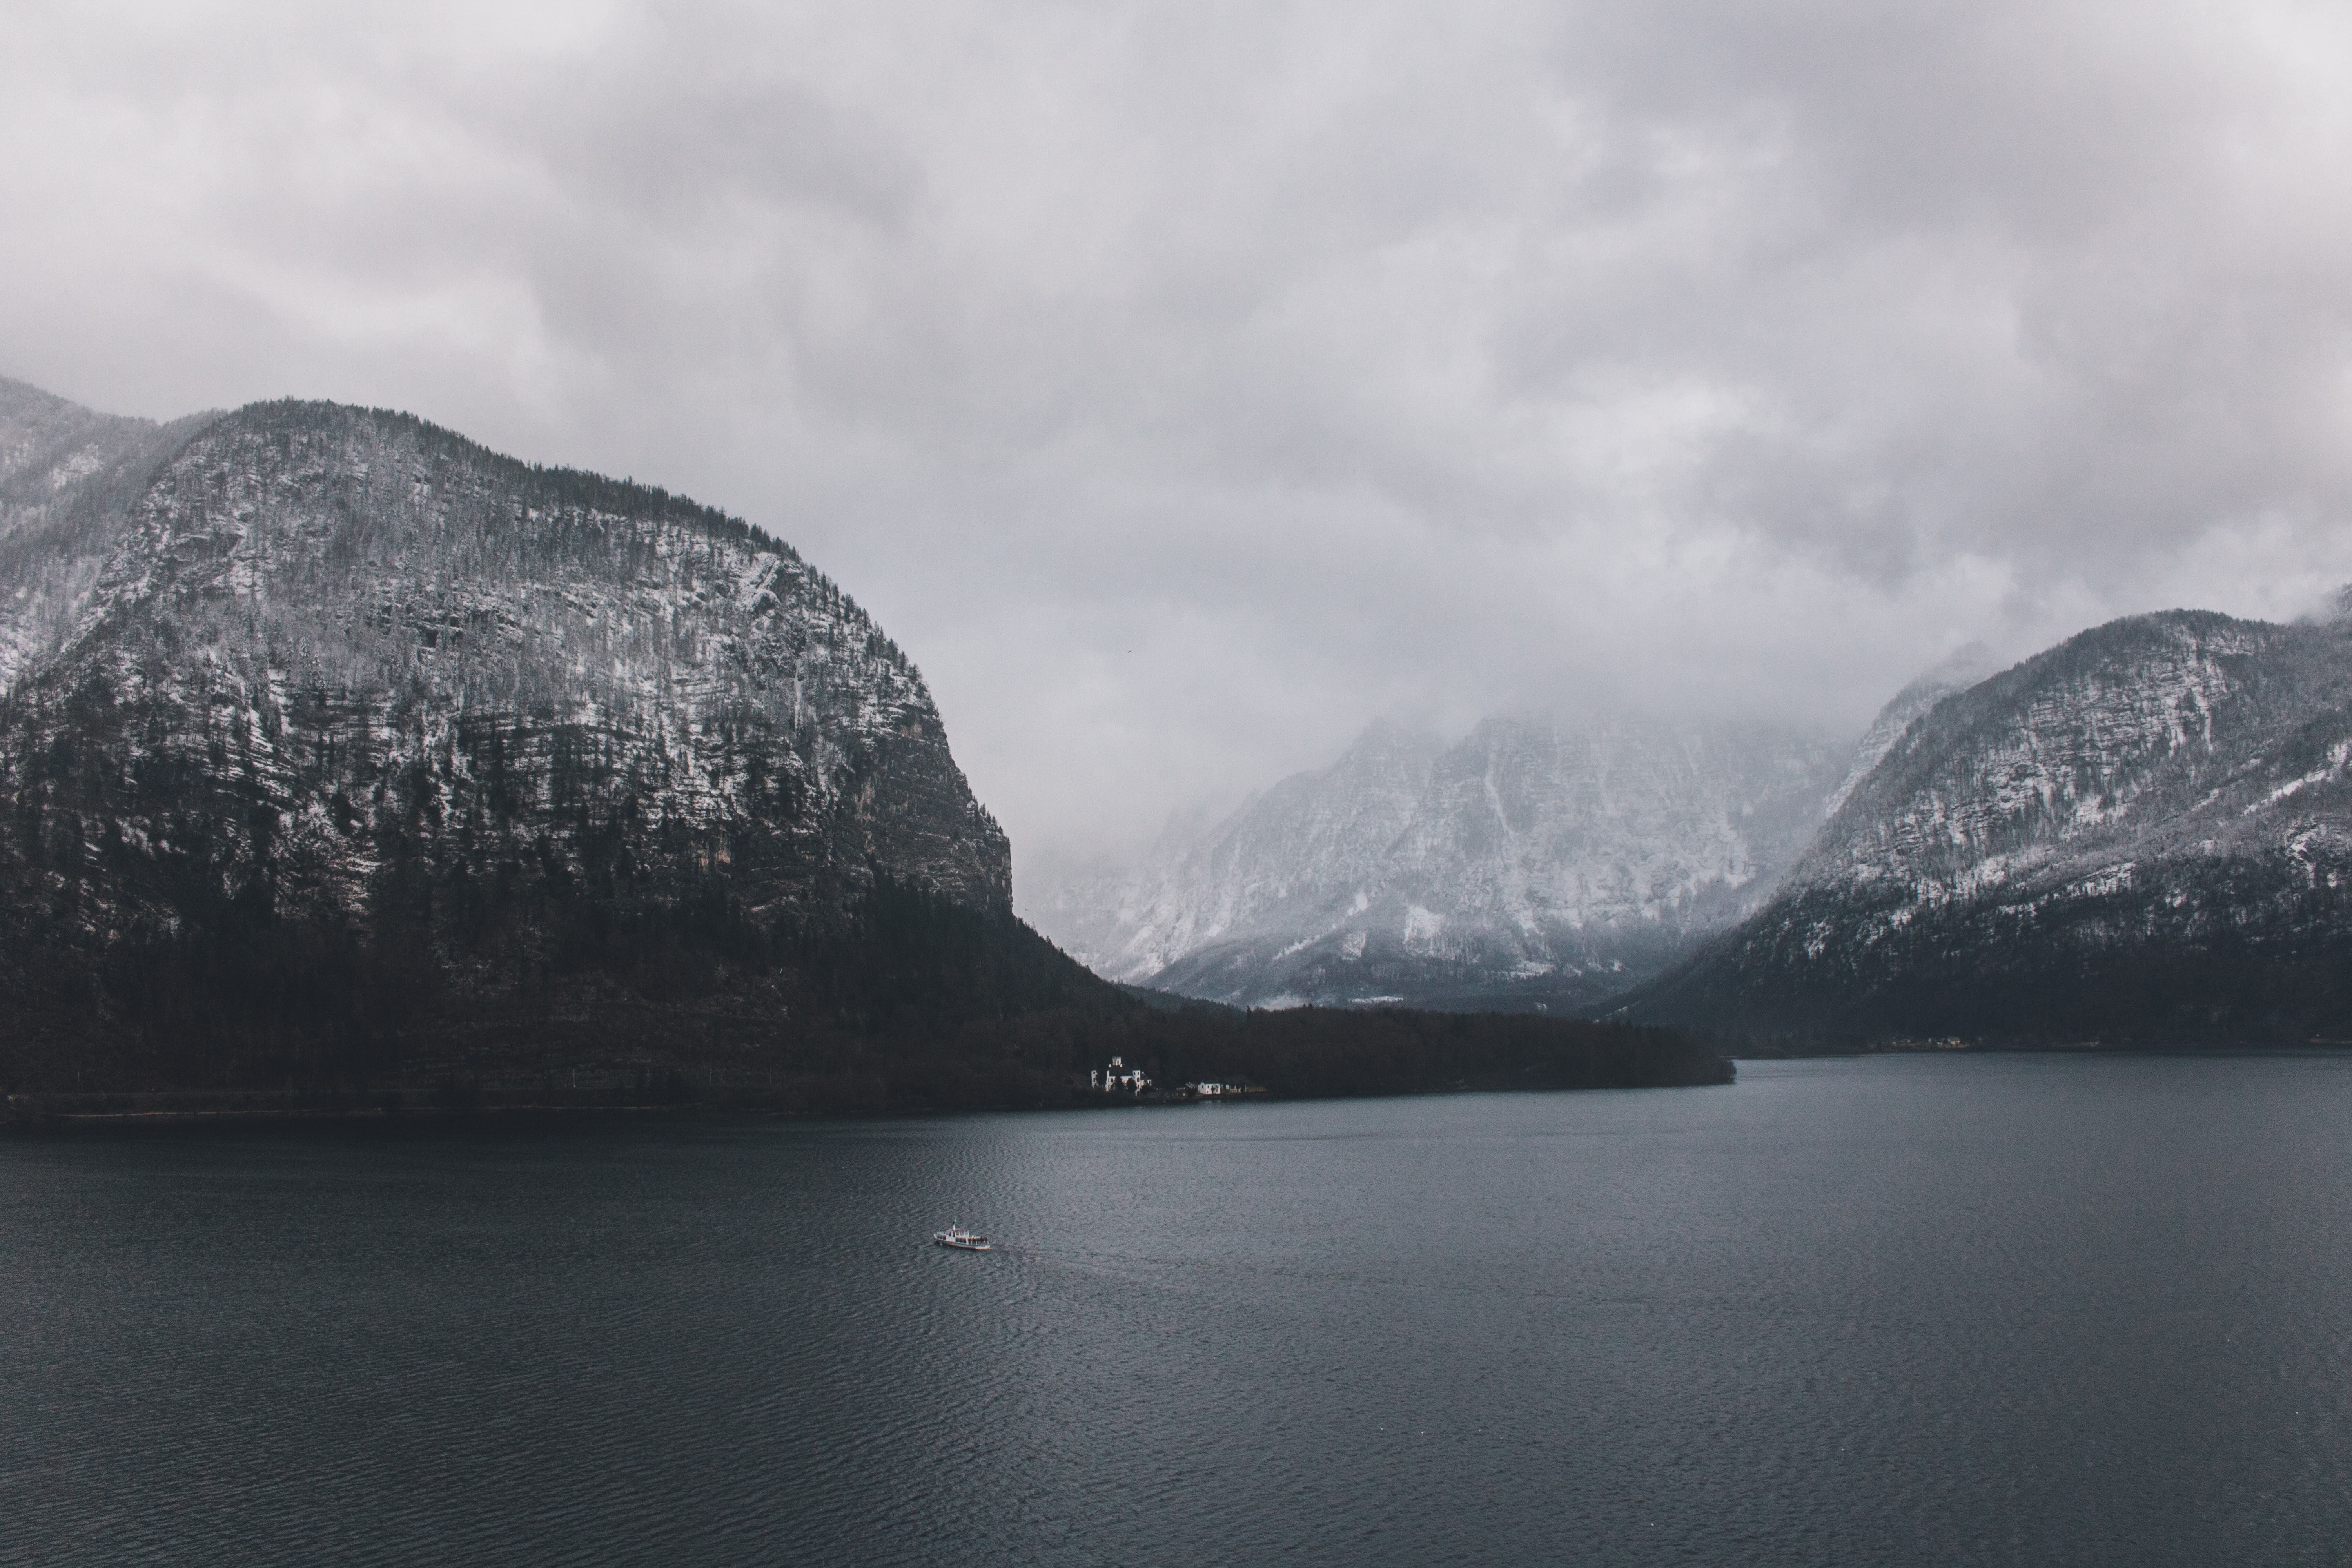 mountain surrounded by body of water